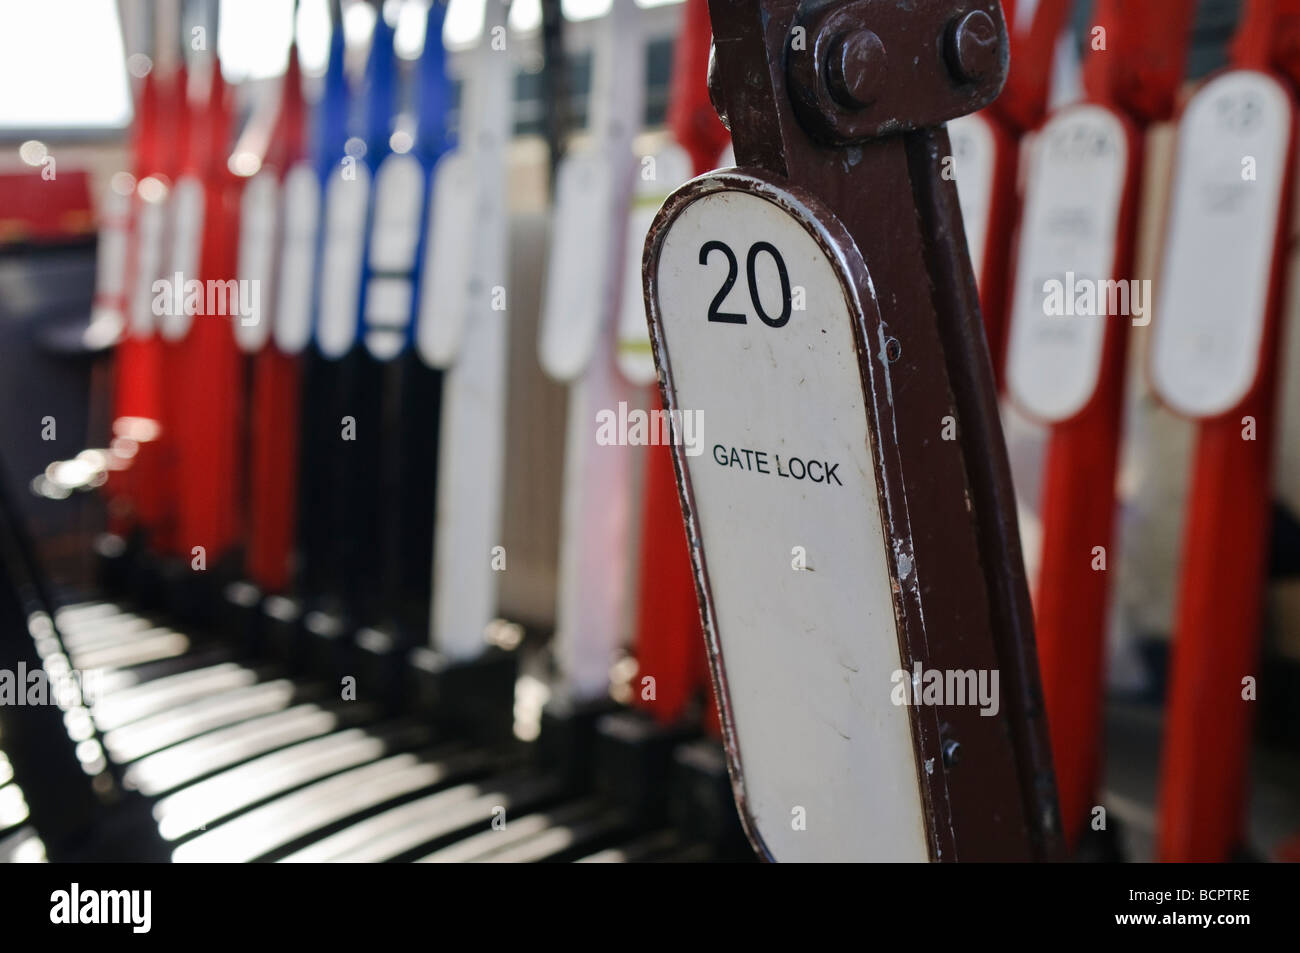 Levers on a lever frame in a manually operated signal box to operate points and signals - Stock Image